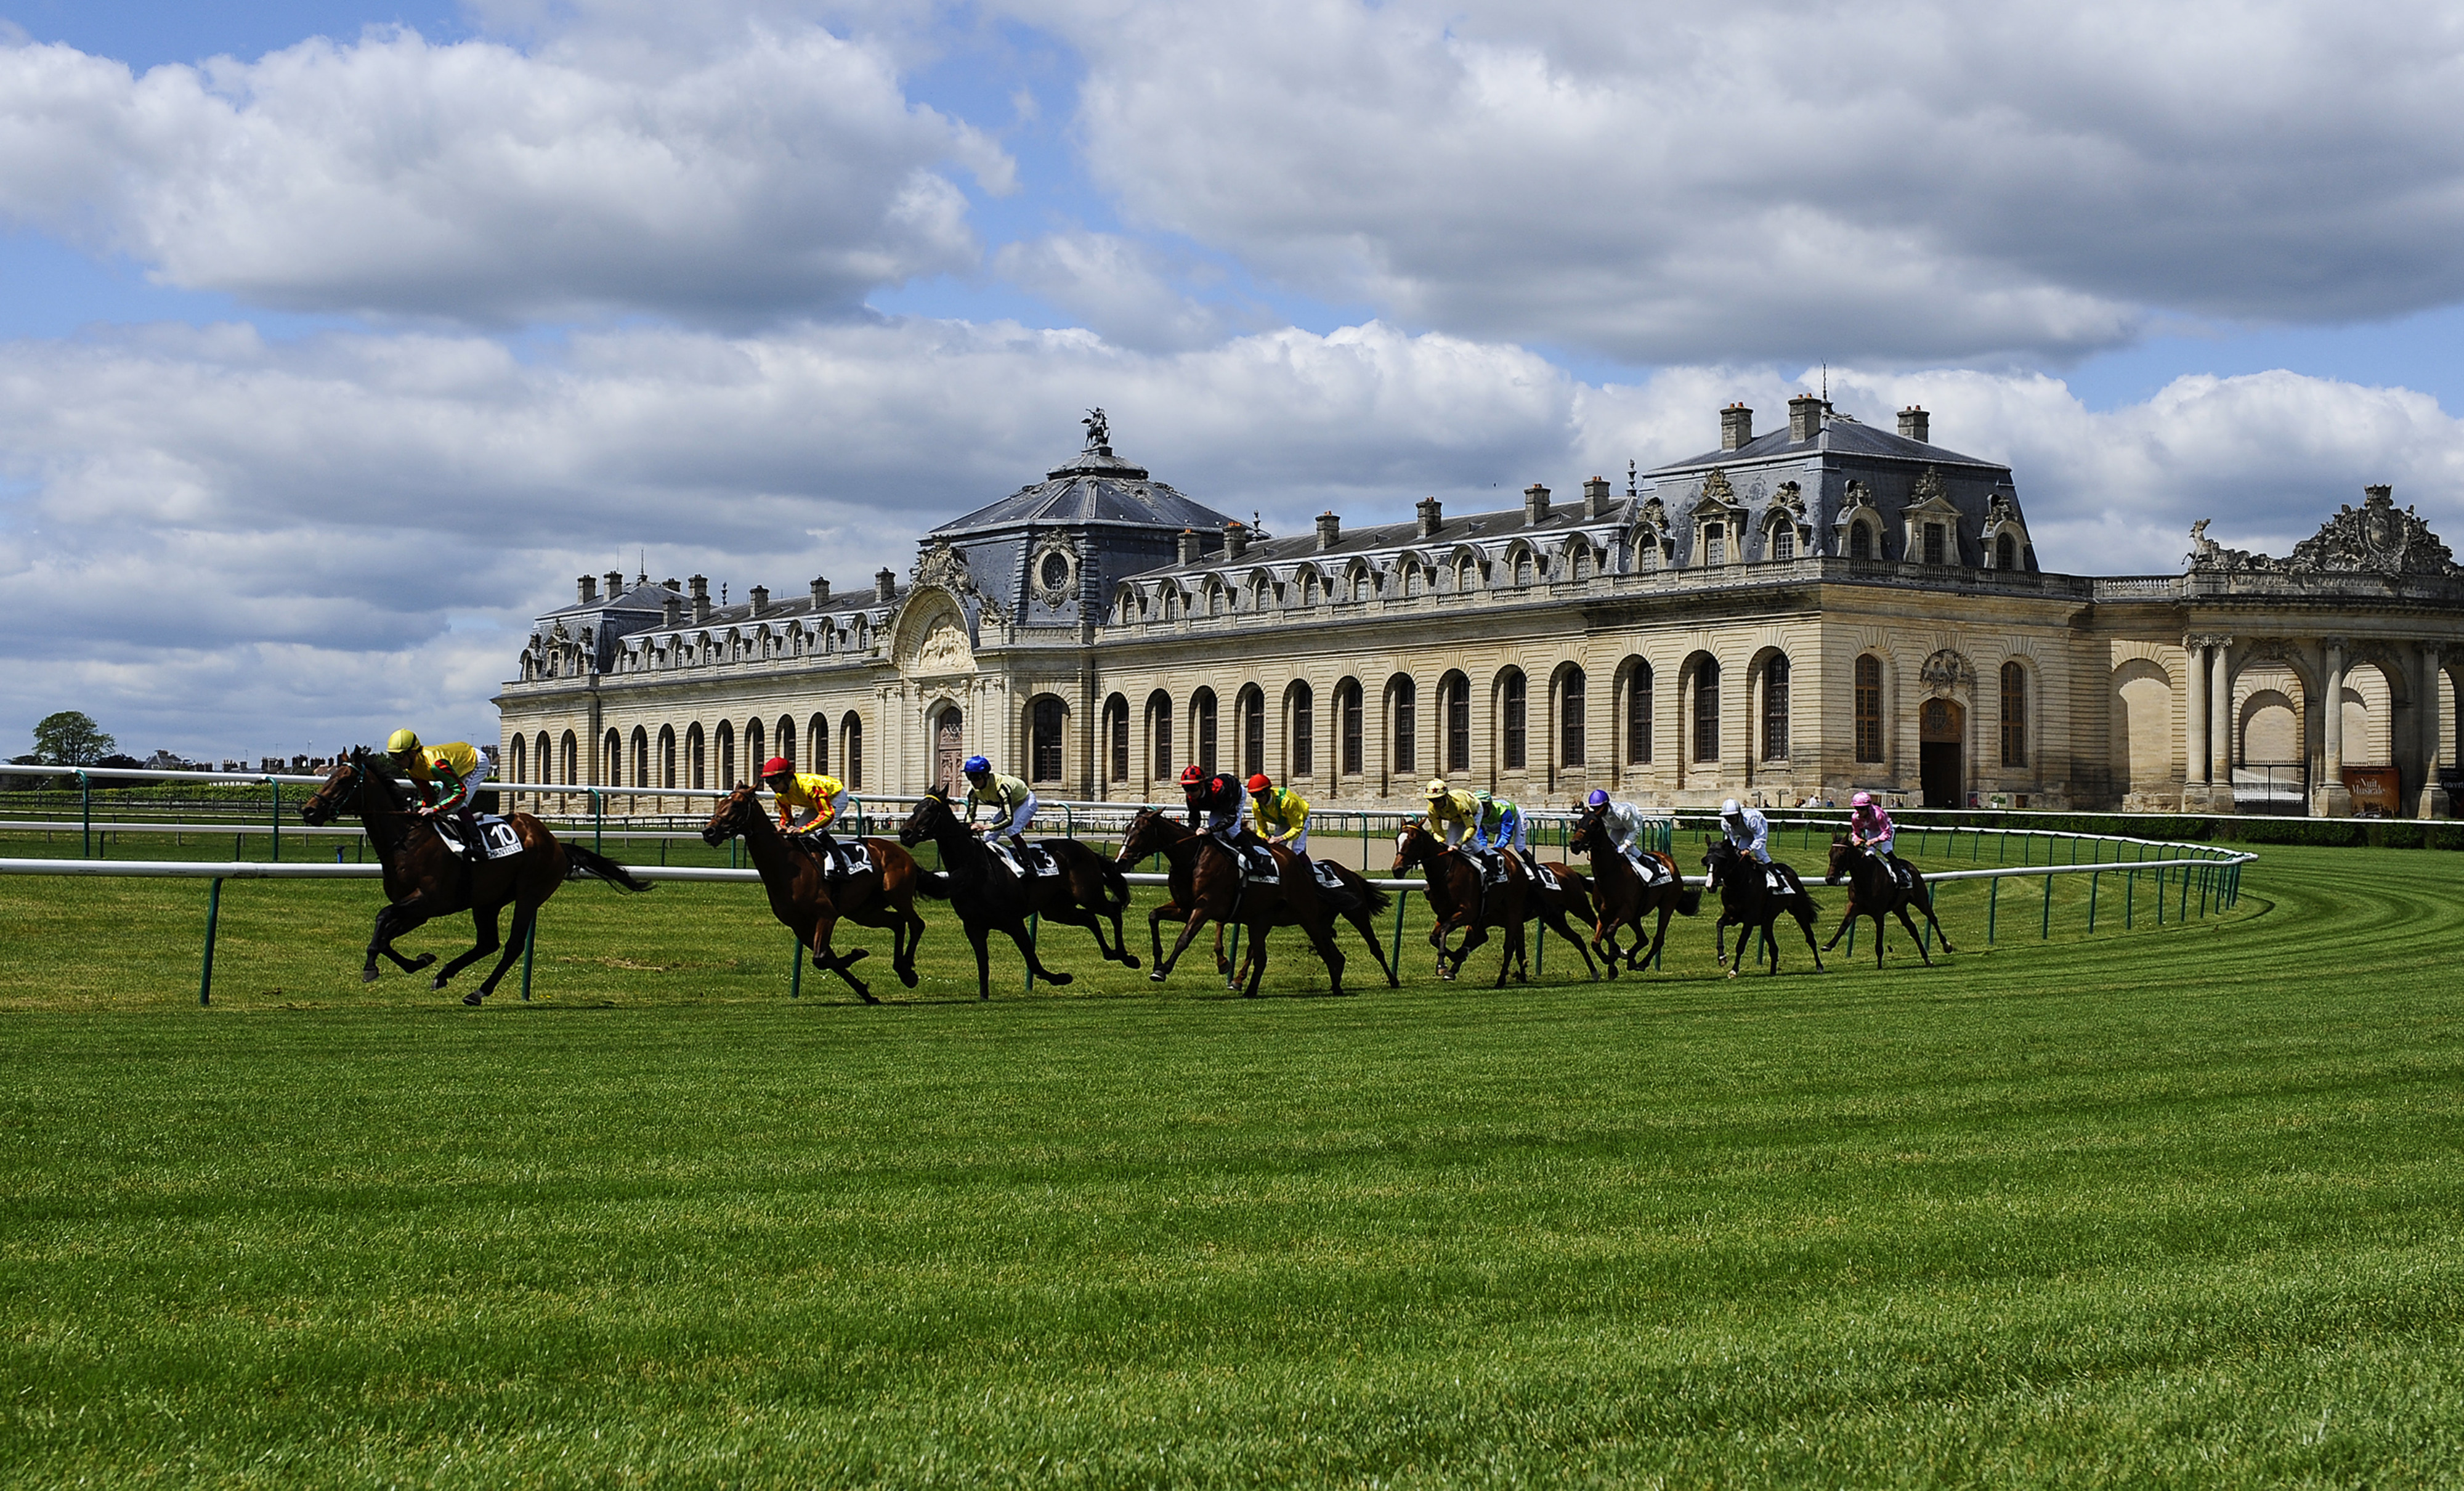 Horses run in front of the Grandes Écuries at majestic Chantilyl Racecourse in France.